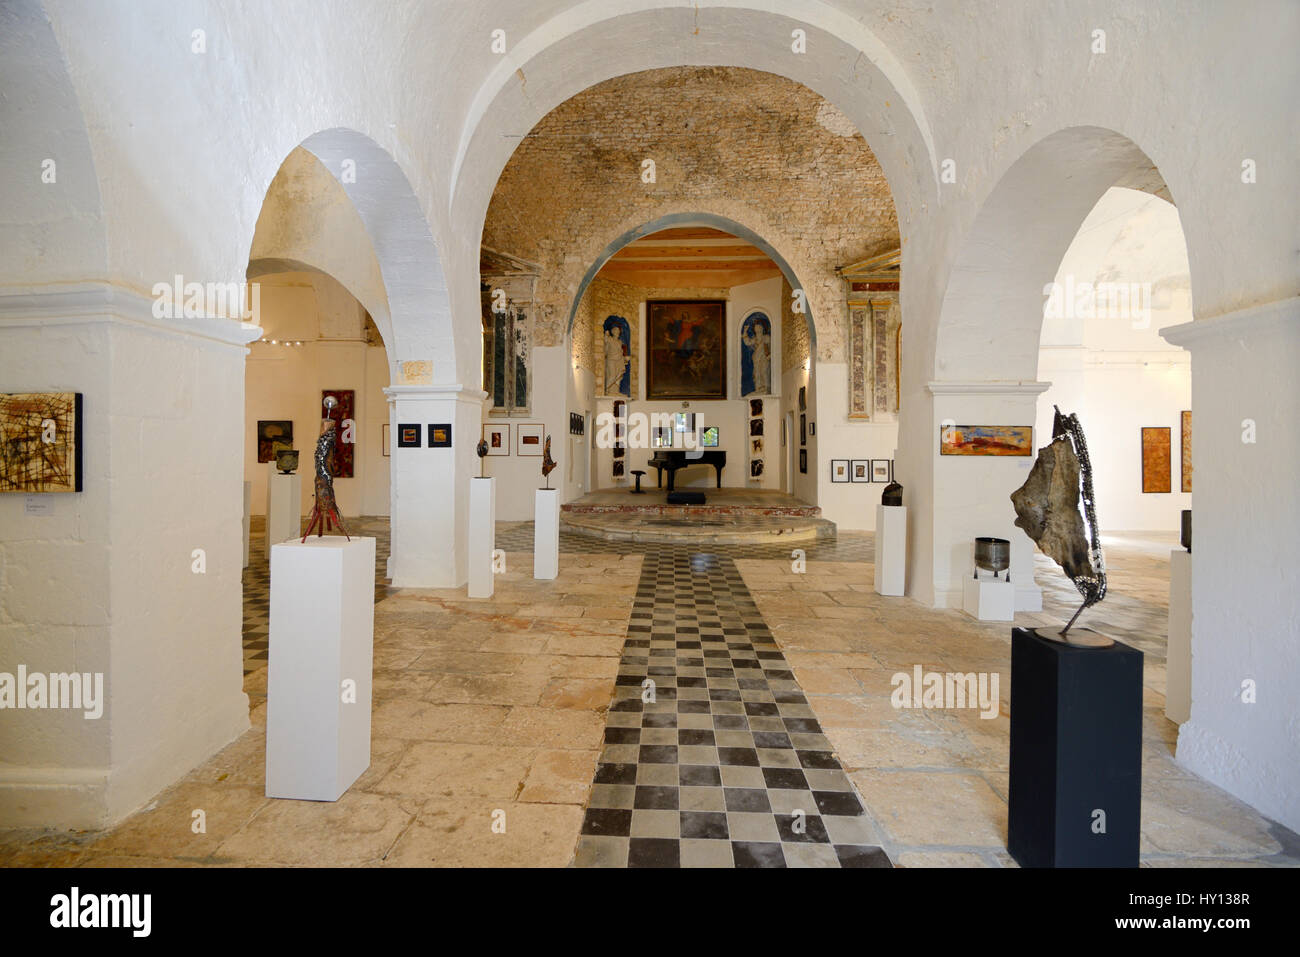 Eglise Haute An Histopric Church Converted into an Exhibition Hall and Art Gallery Banon Alpes-de-Haute-Provence - Stock Image